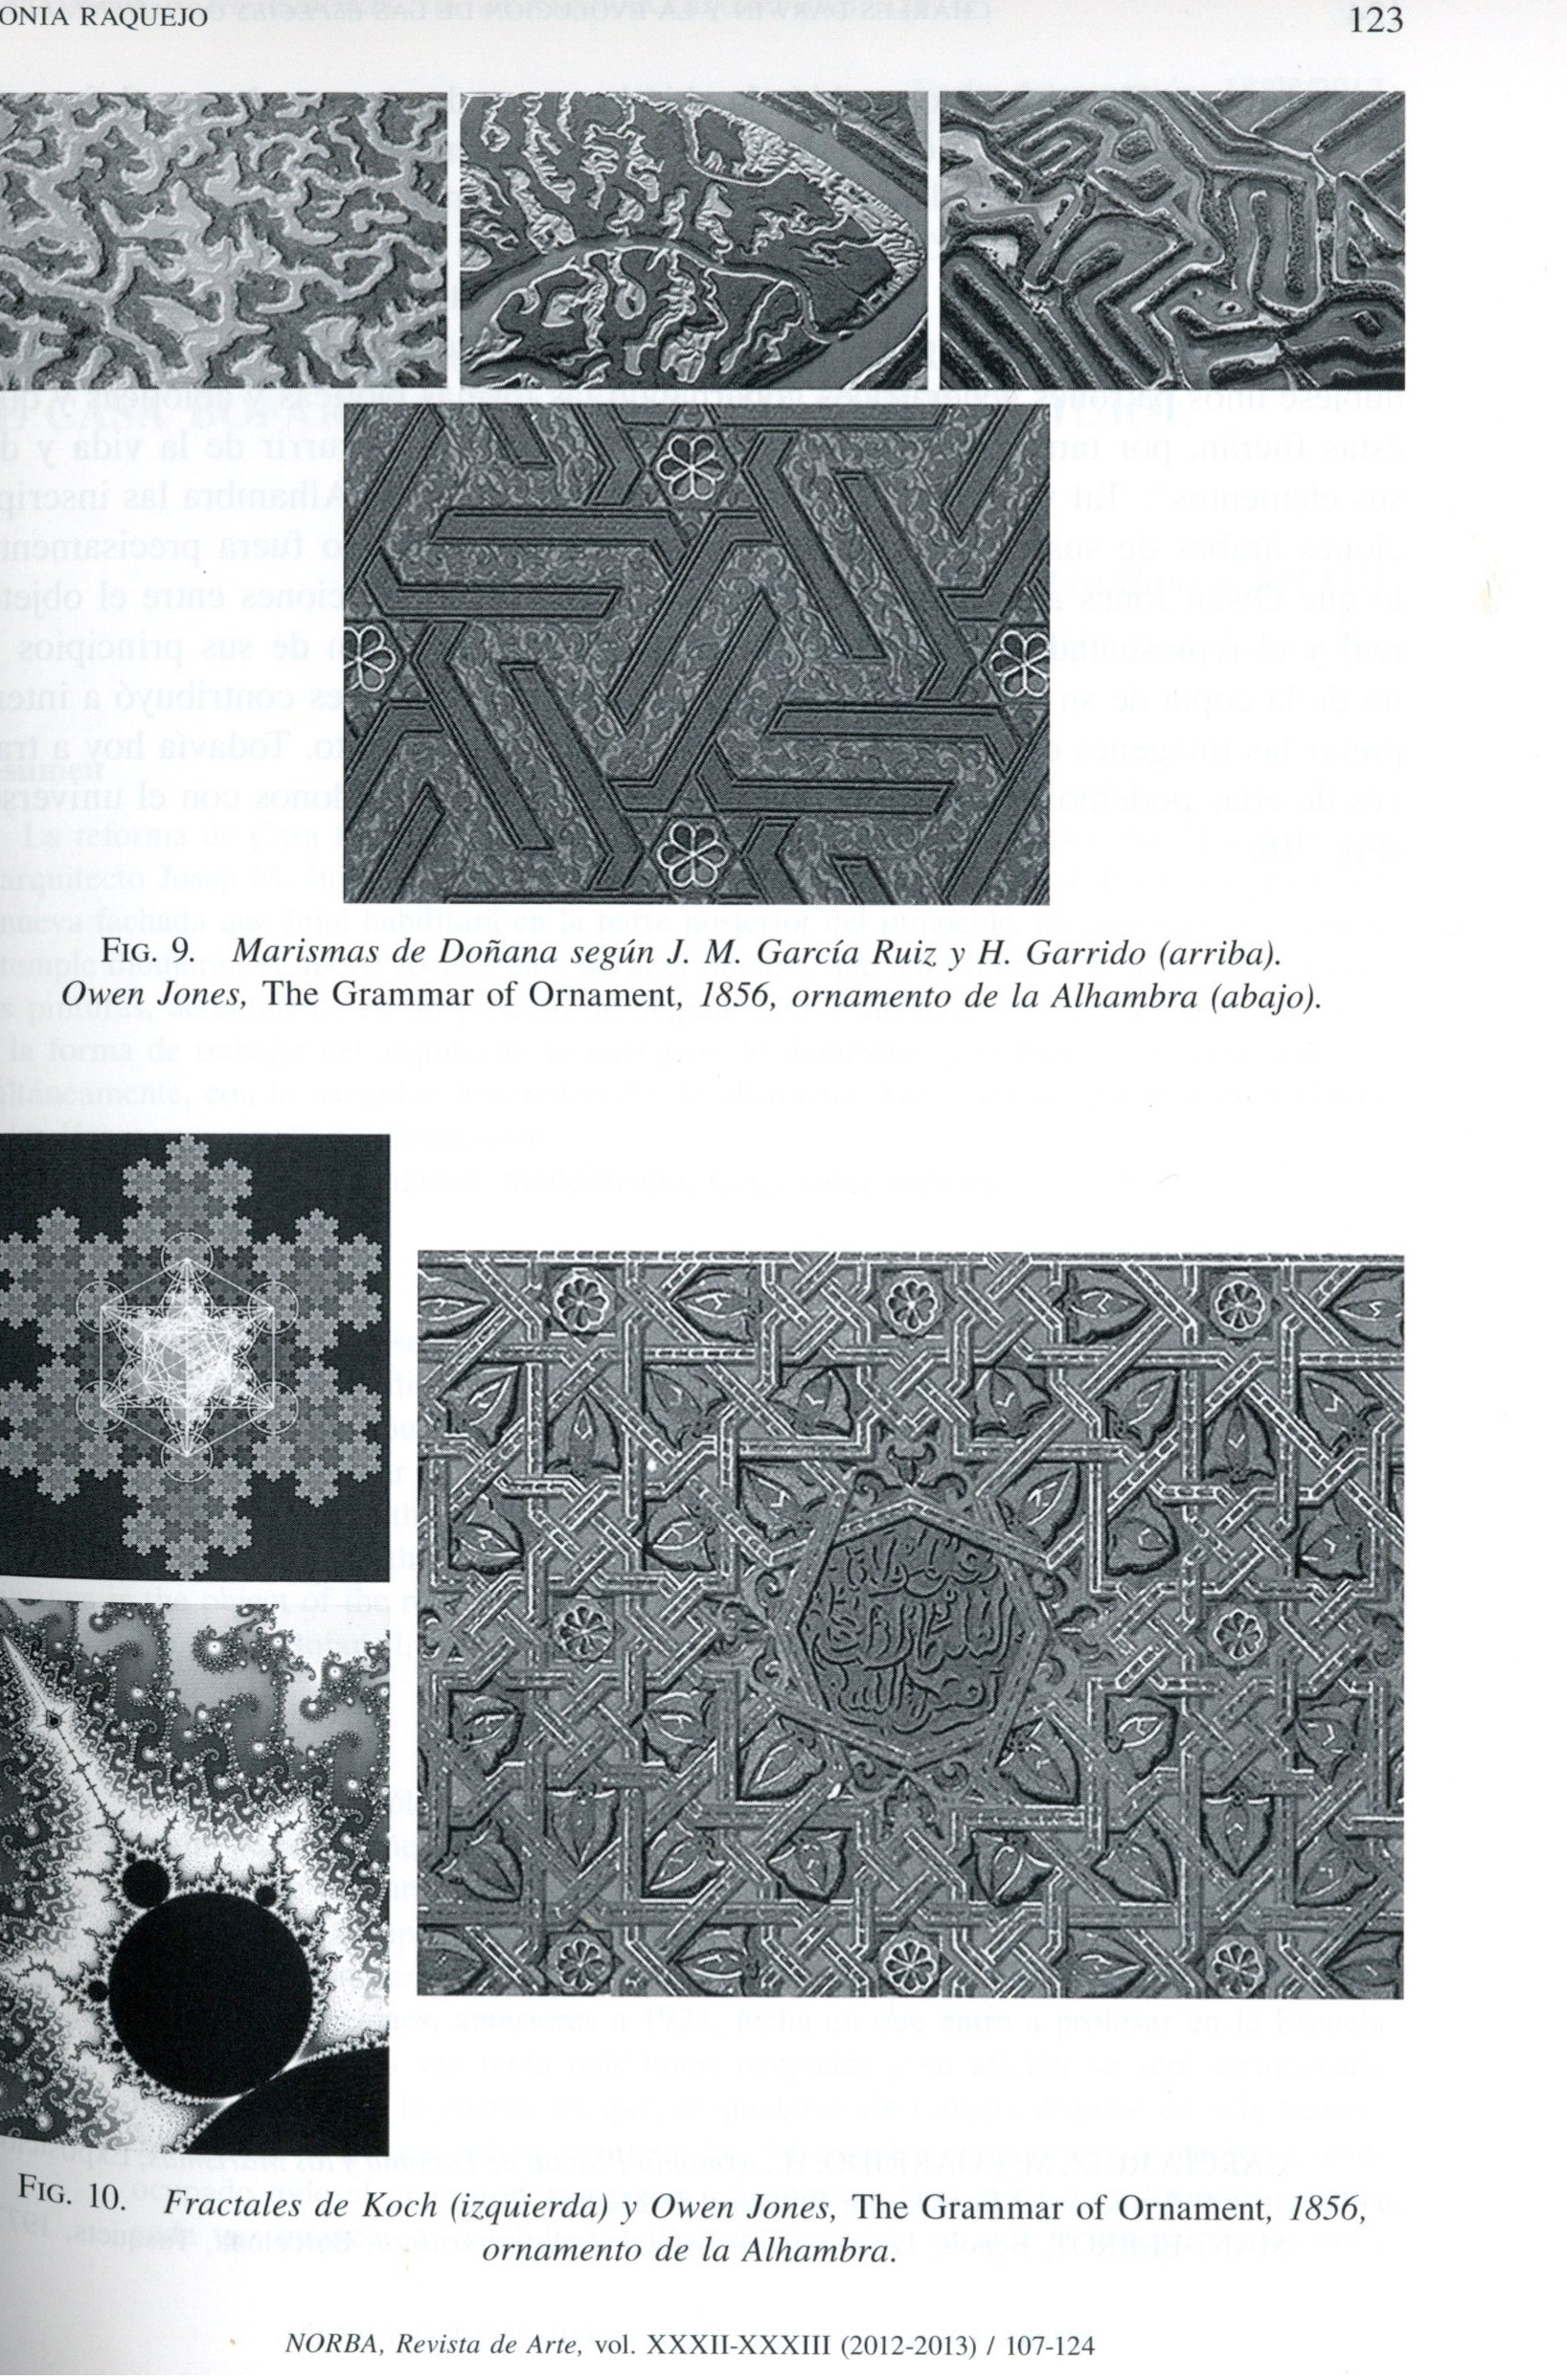 Charles Darwin and the evolution of ornamental species in the Alhambra of Owen Jones / Tonia Raquejo